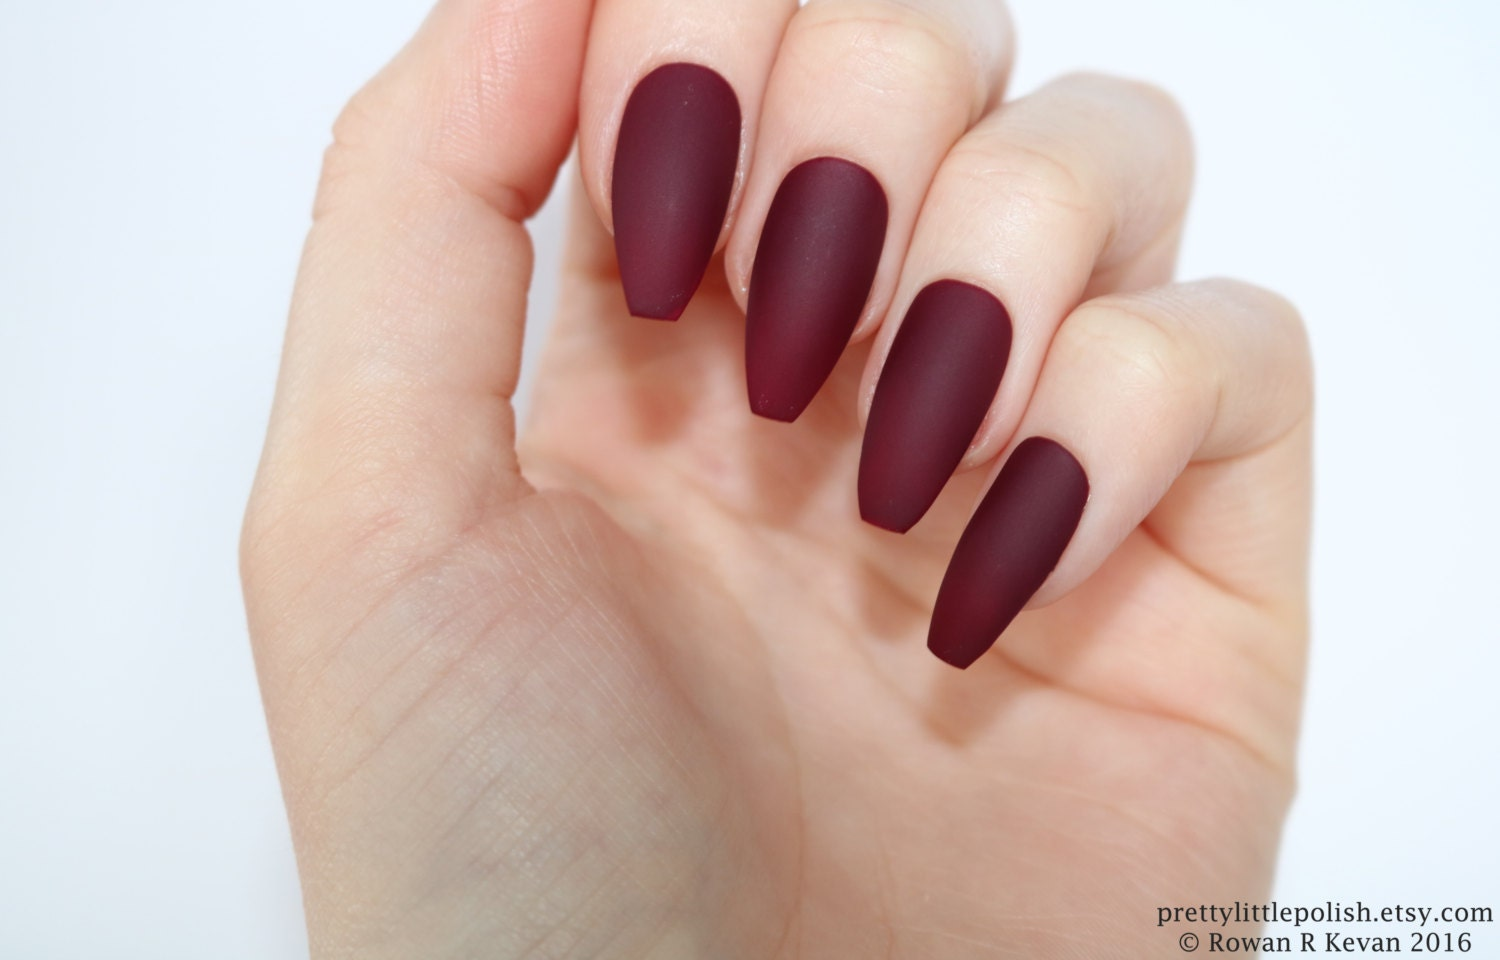 Wunderbar Gelnägel Bilder 2017 Dekoration Von Burgundy Coffin Acrylic Nails